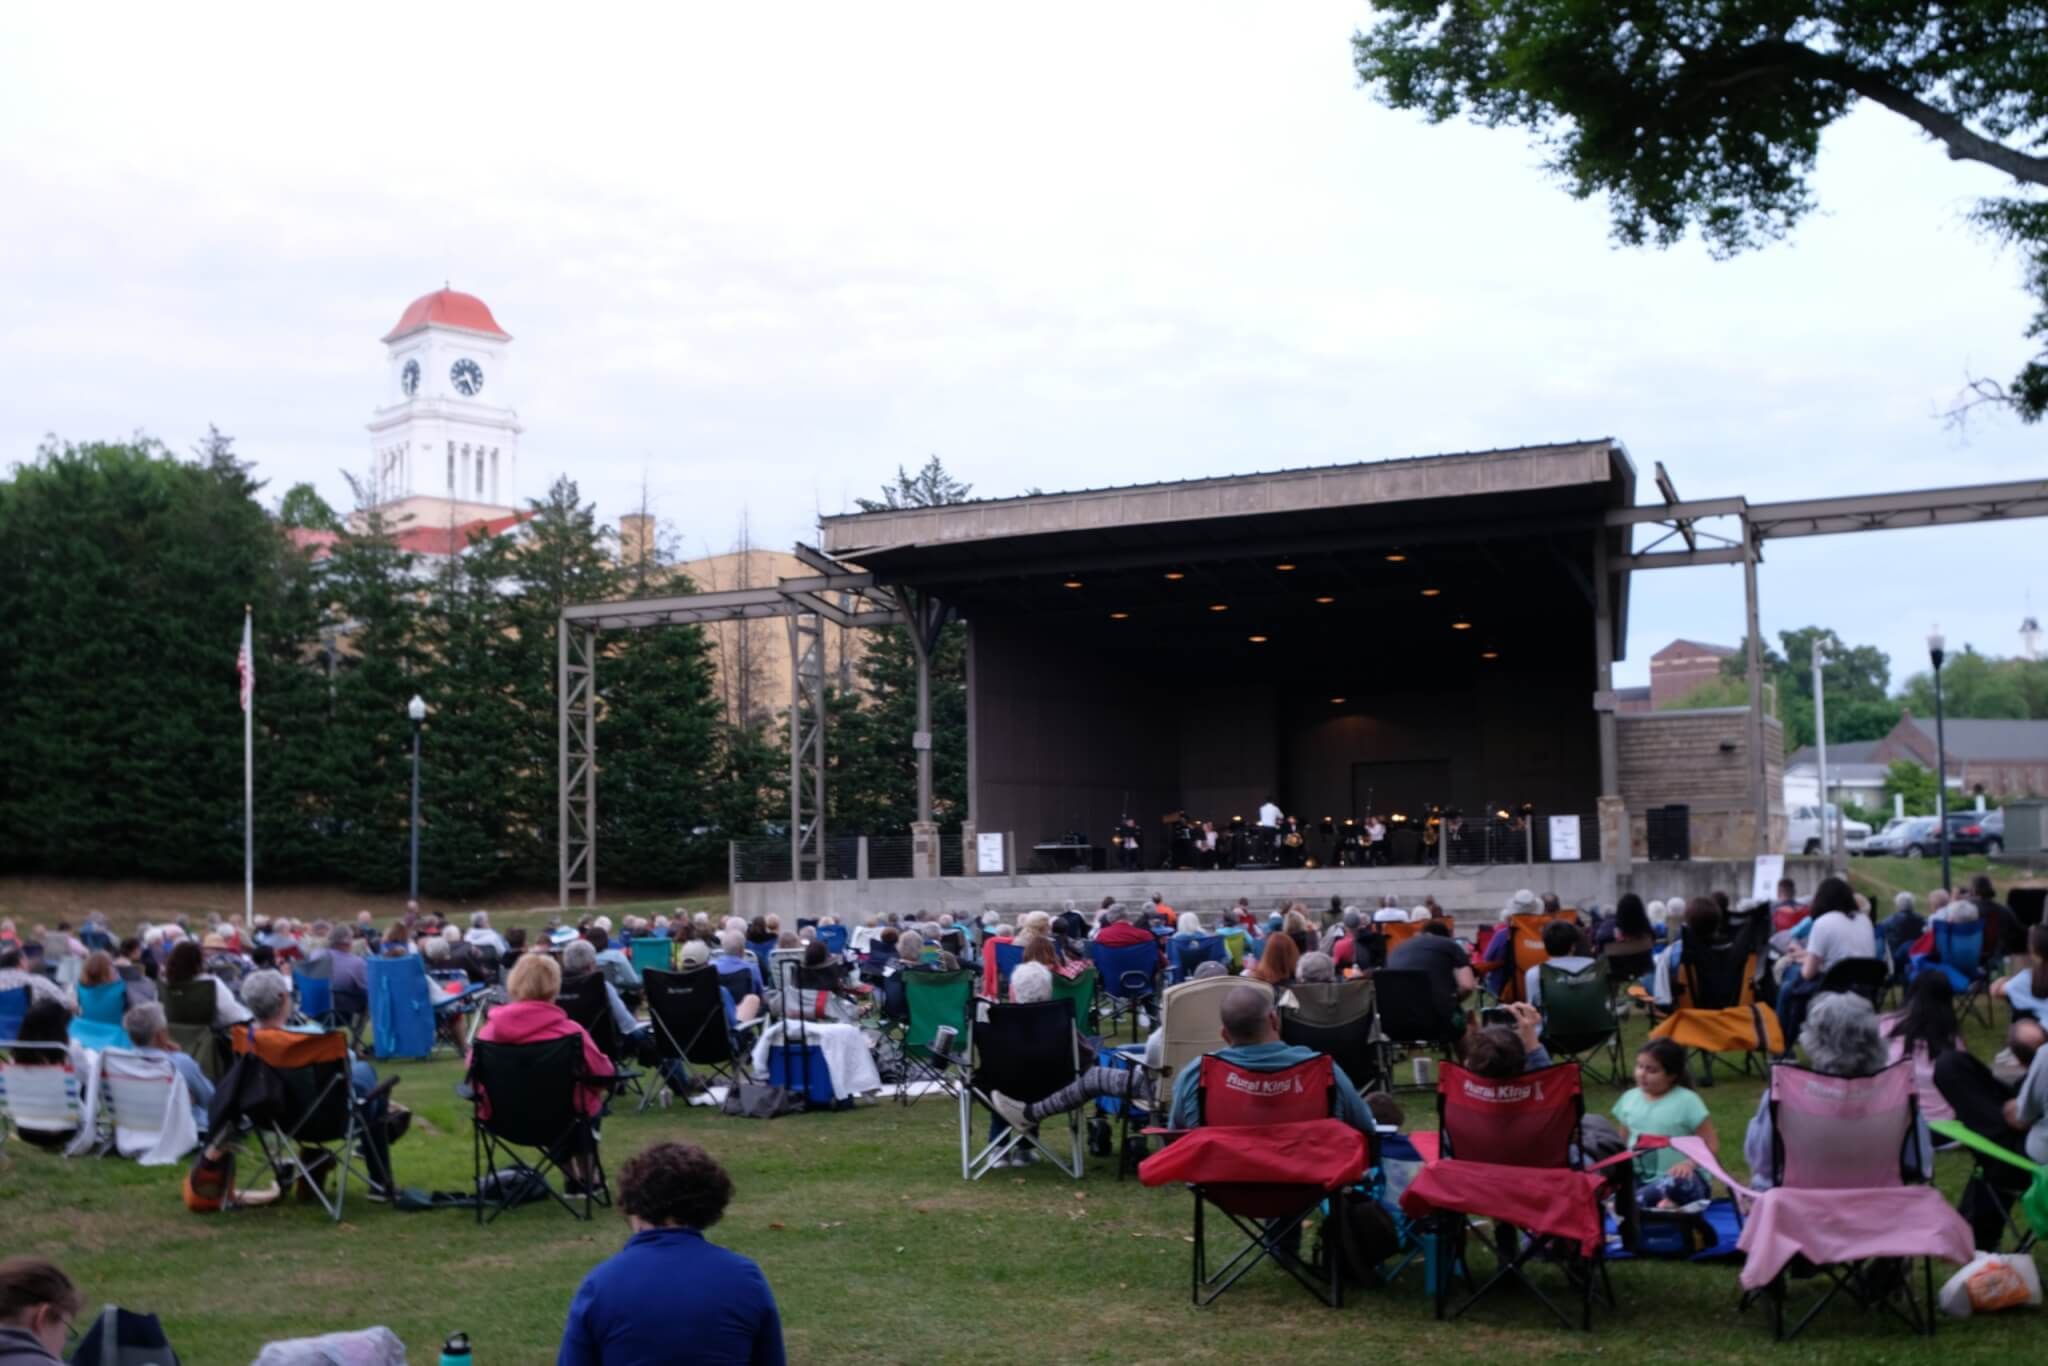 A crowd watches the KSO perform at the 2021 Maryville runout concert